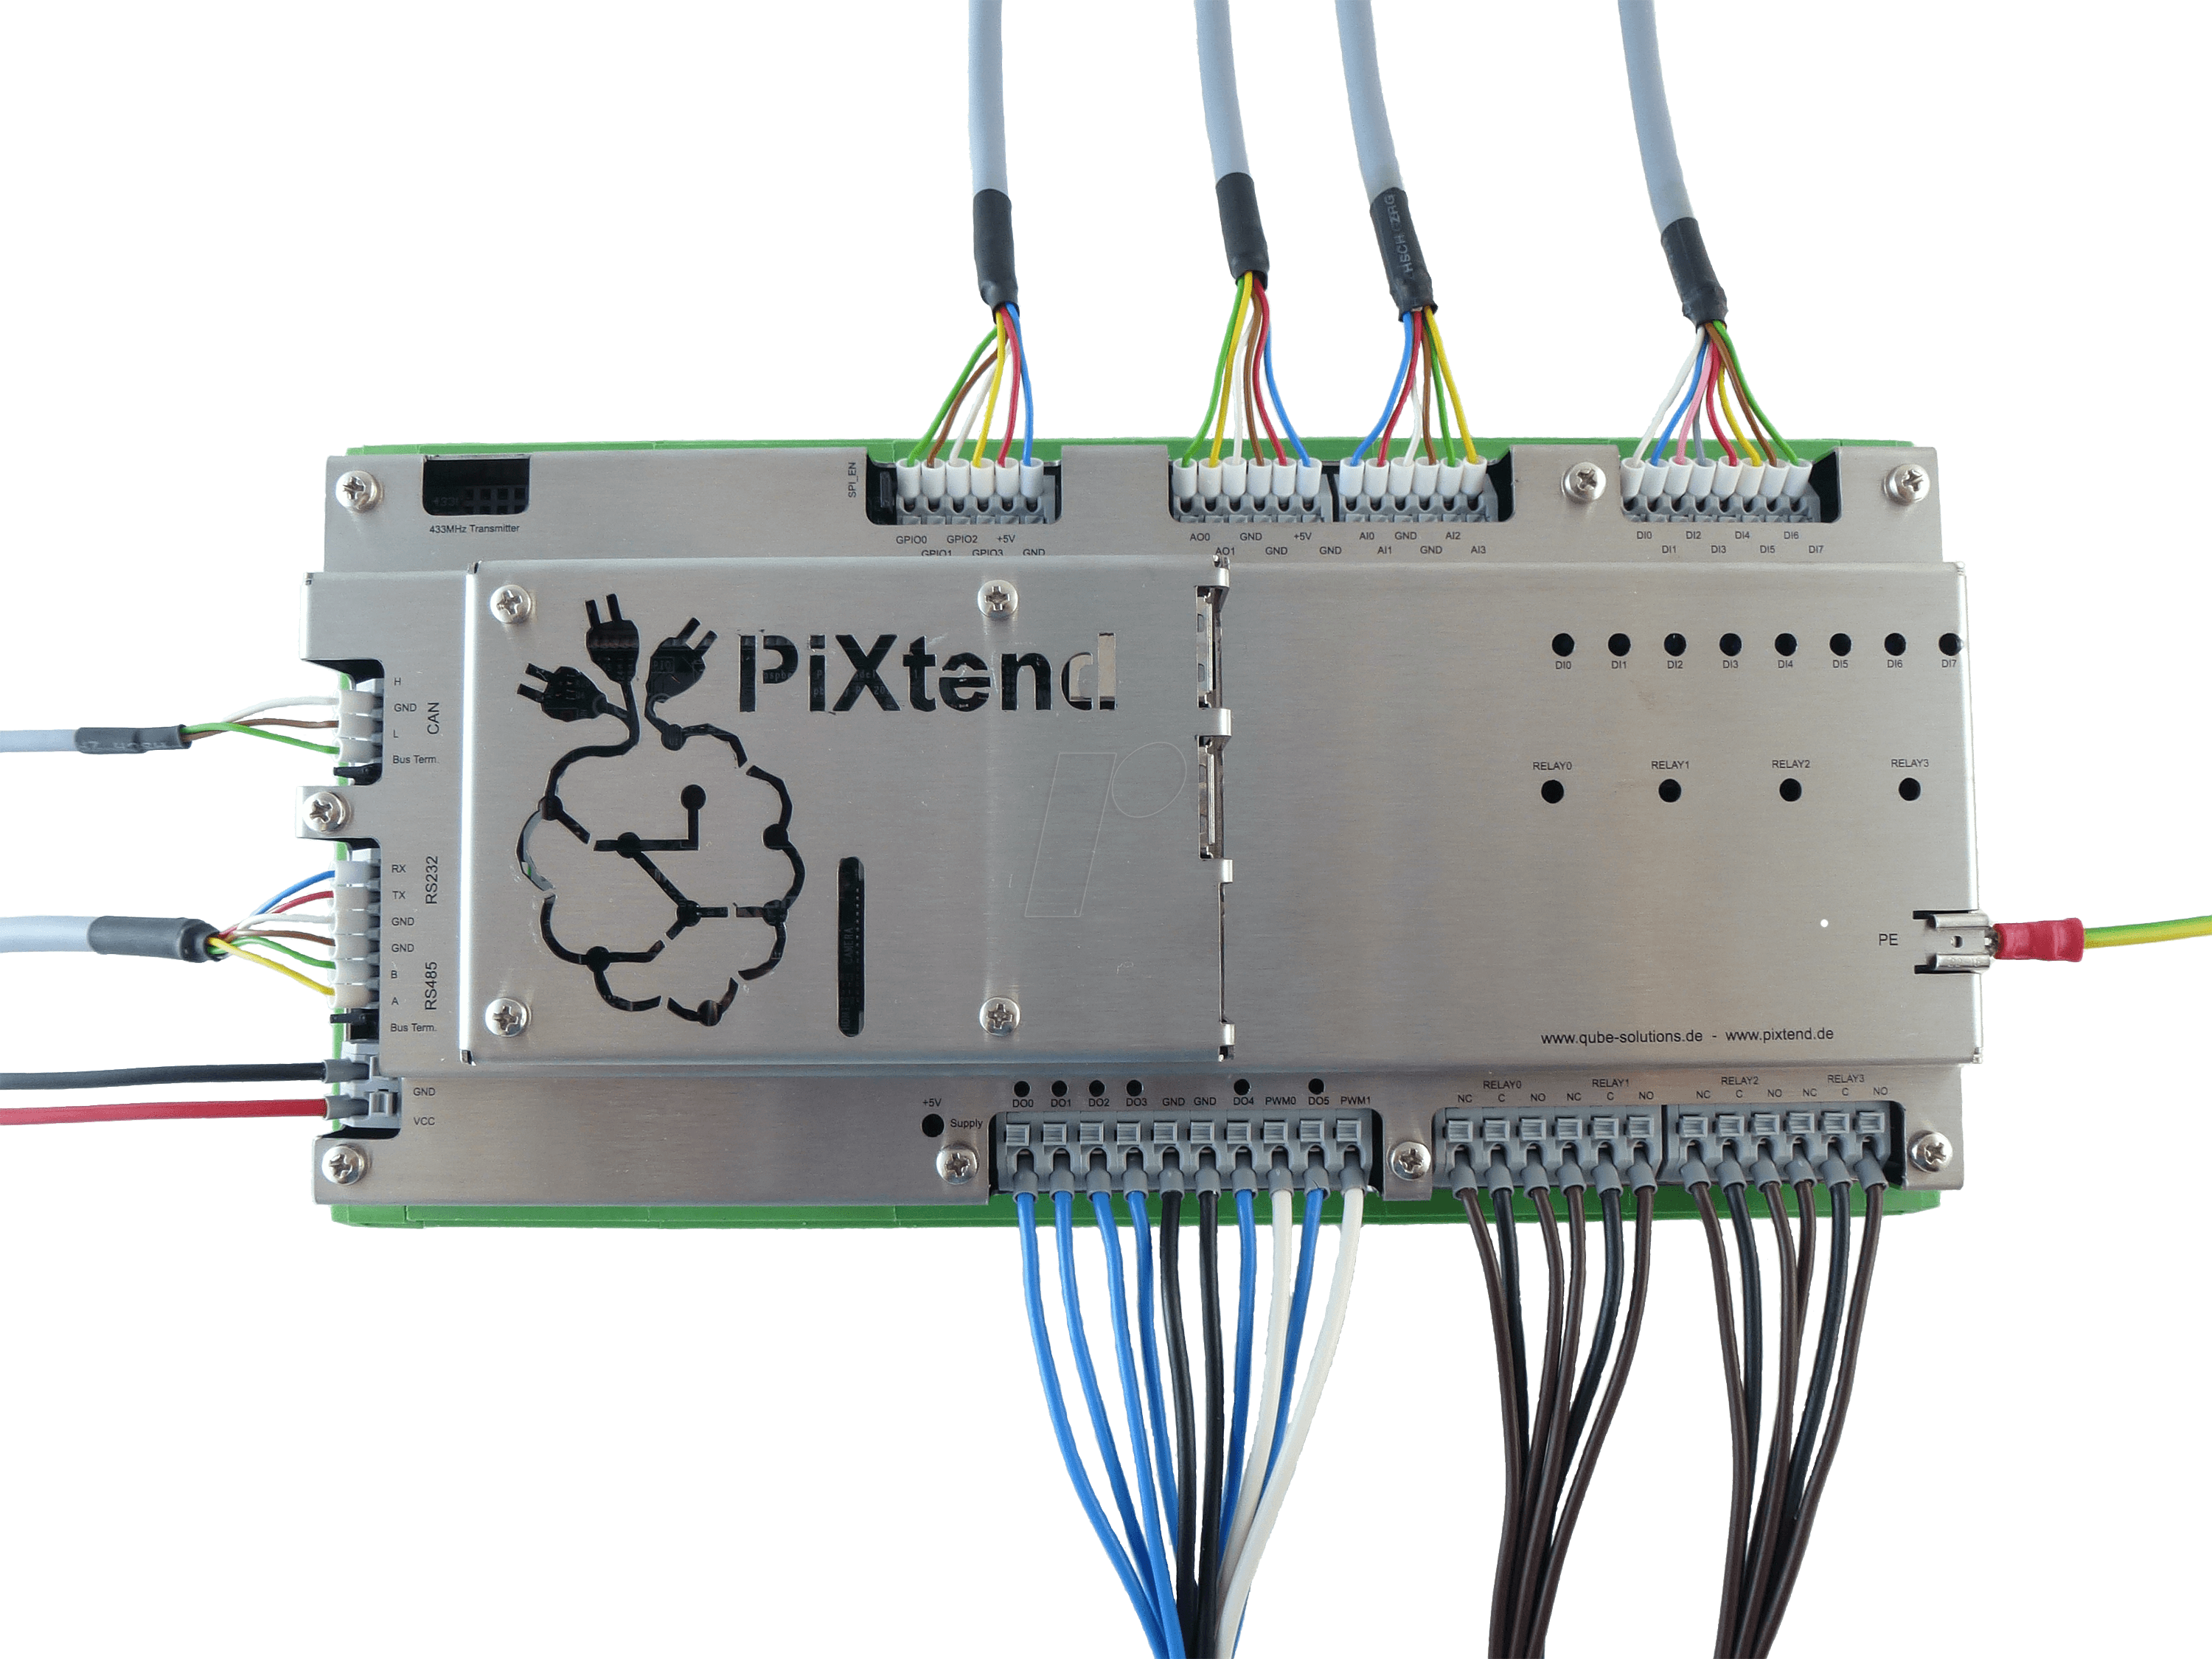 PIXTEND1 3 FULL - Raspberry Pi Shield - PLC PiXtend V1 3 Full